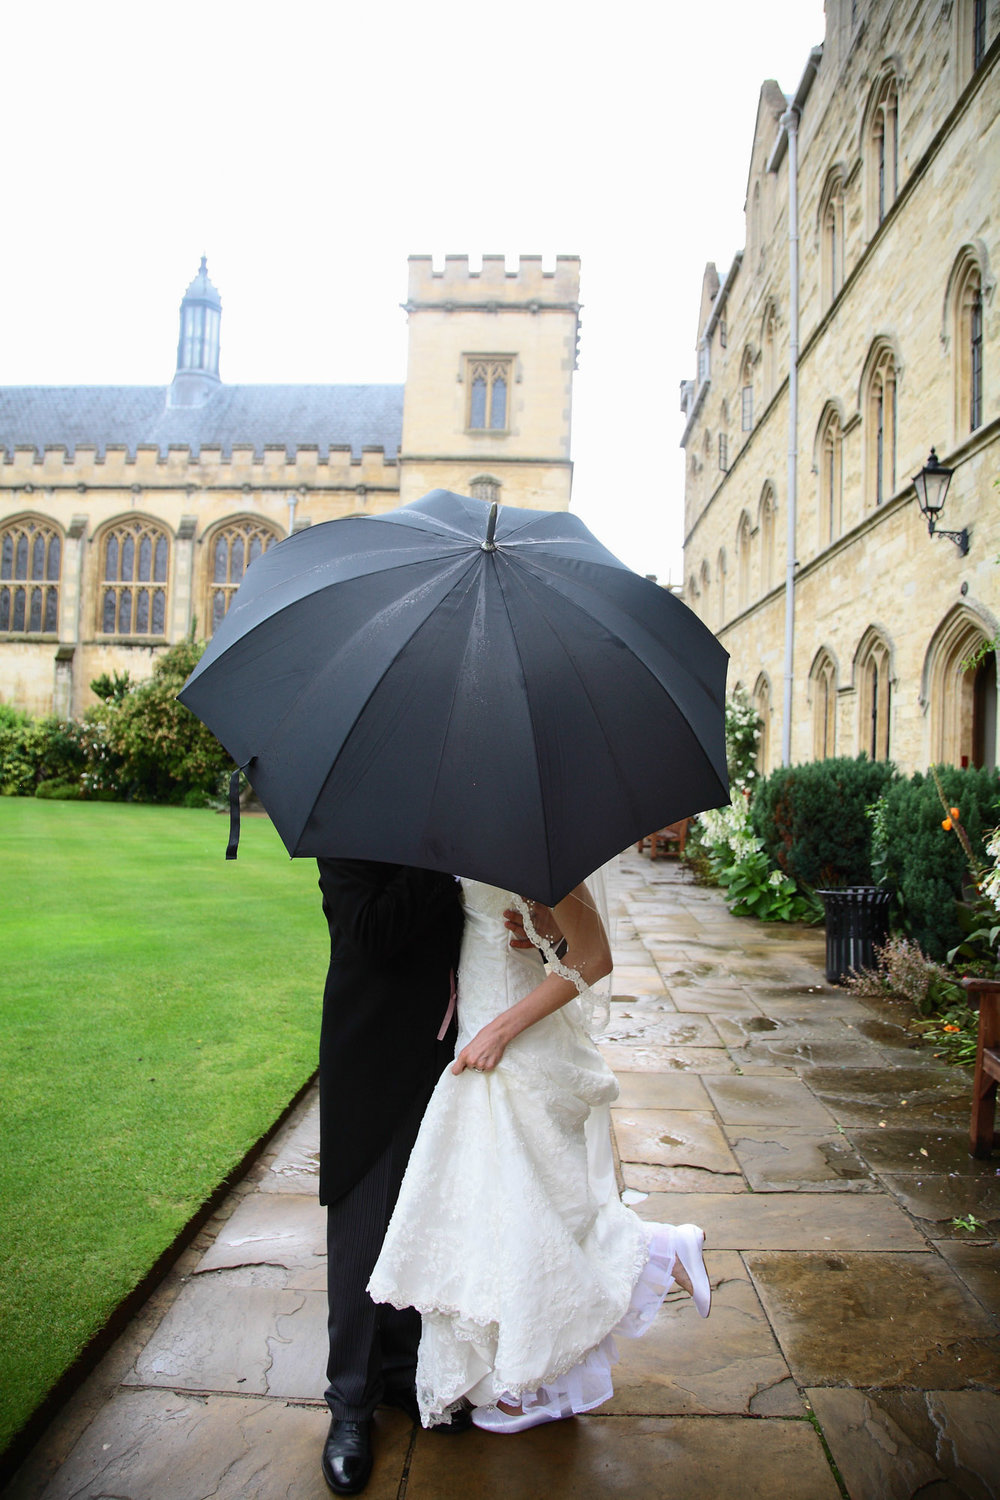 weddings-couples-love-photographer-oxford-london-jonathan-self-photography-90.jpg